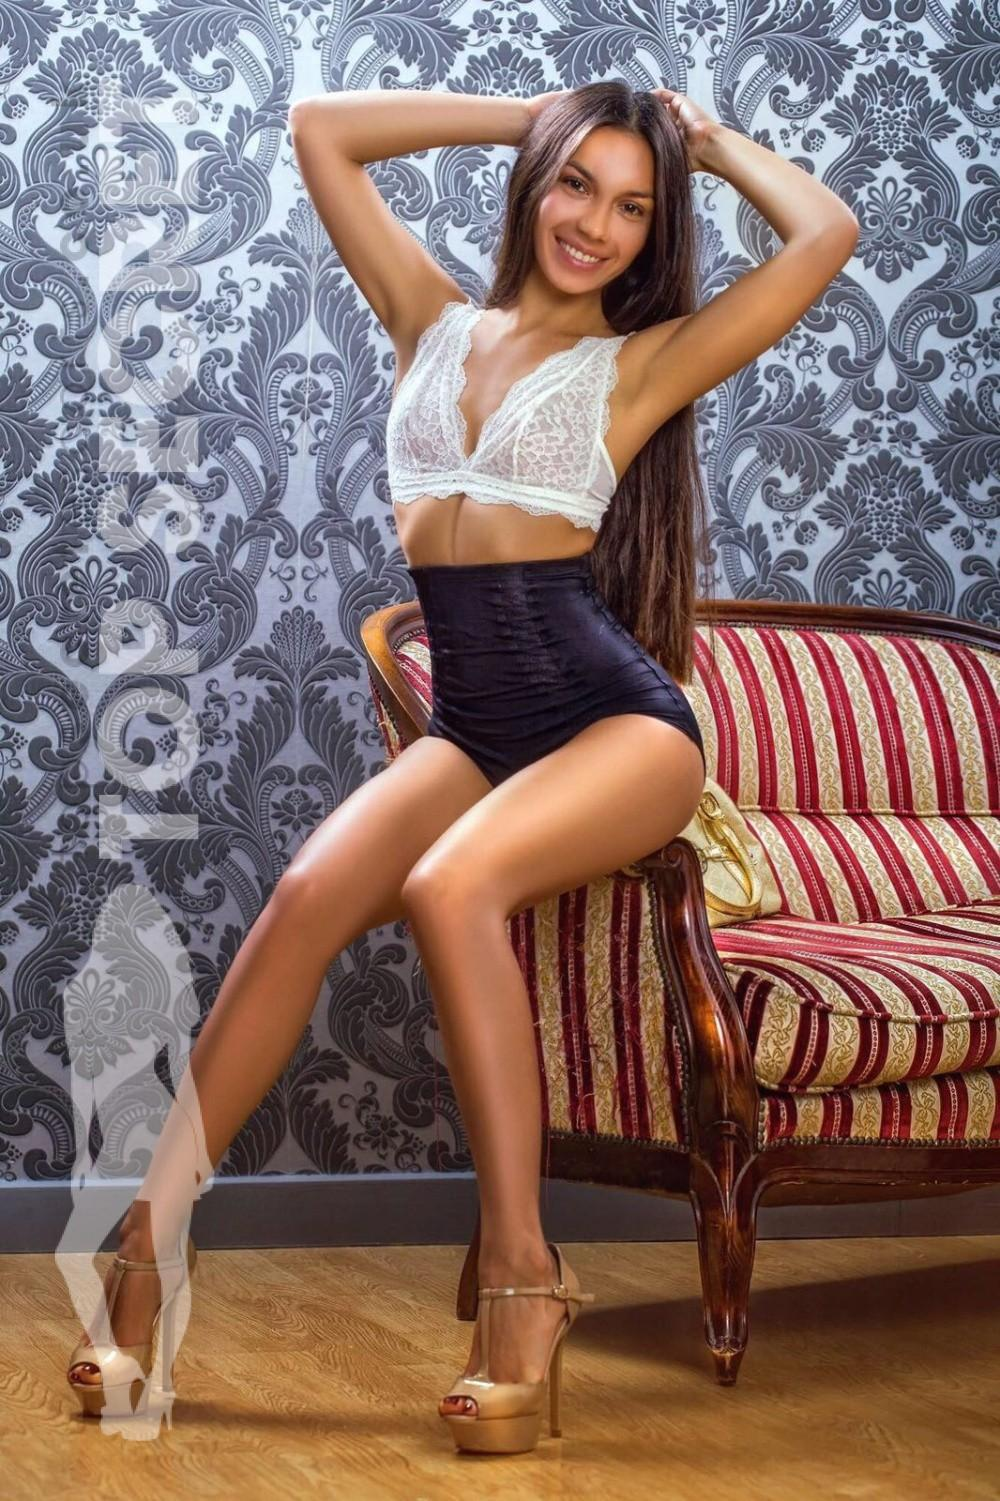 Irina from Topsecret Escorts